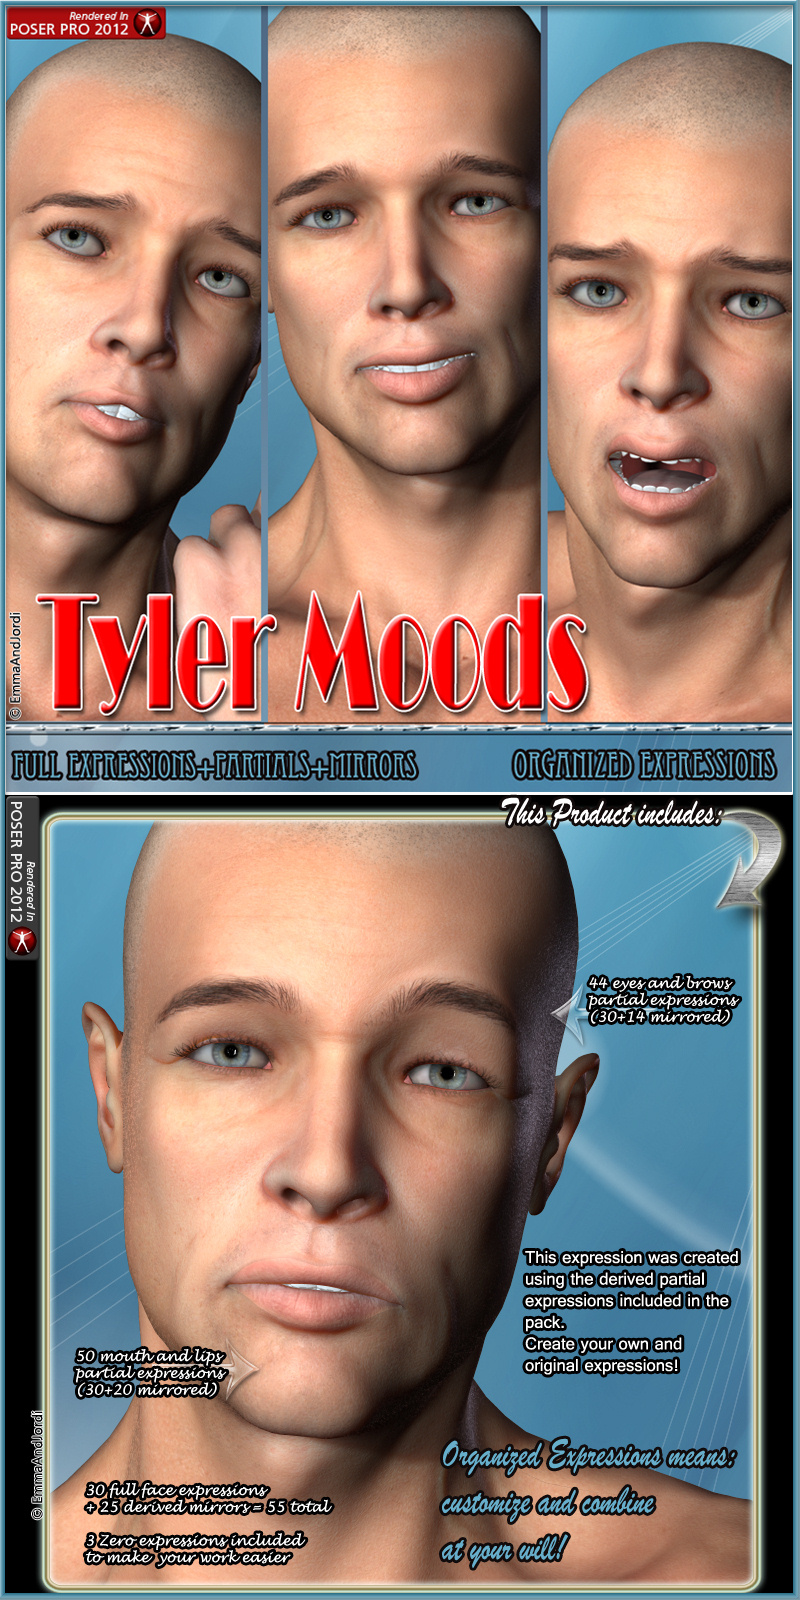 Tyler Moods Organized Expressions